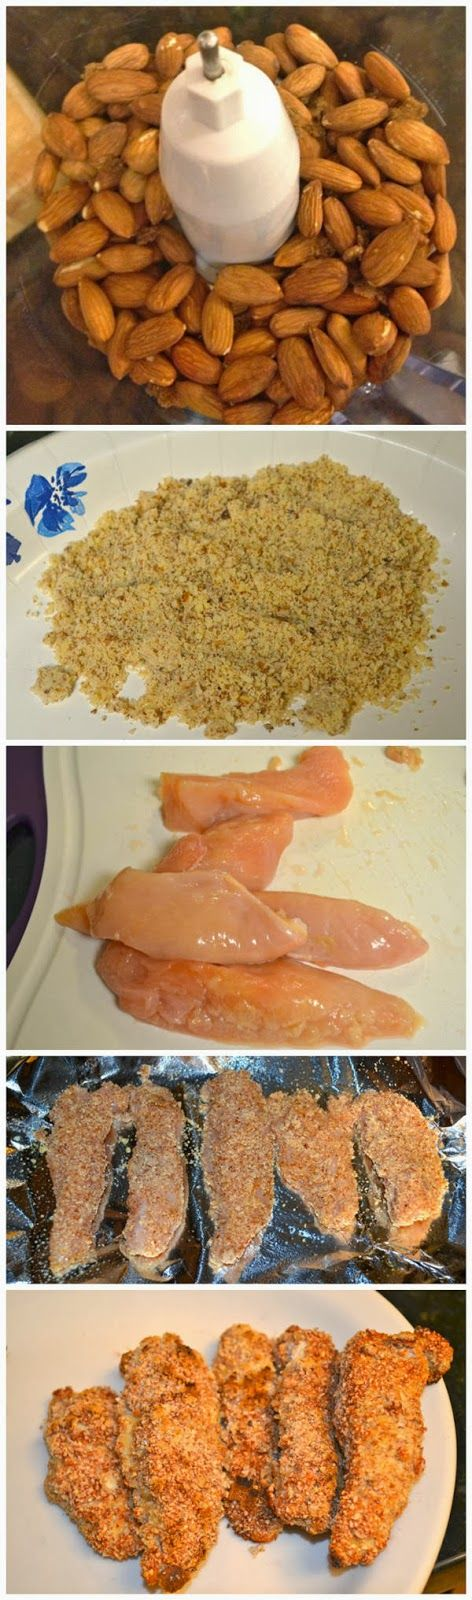 Ingredients    -1 cup of raw unsalted almonds  -1 chicken breast  -extra virgin olive oil spray    Directions  See Full Recipe please vi...